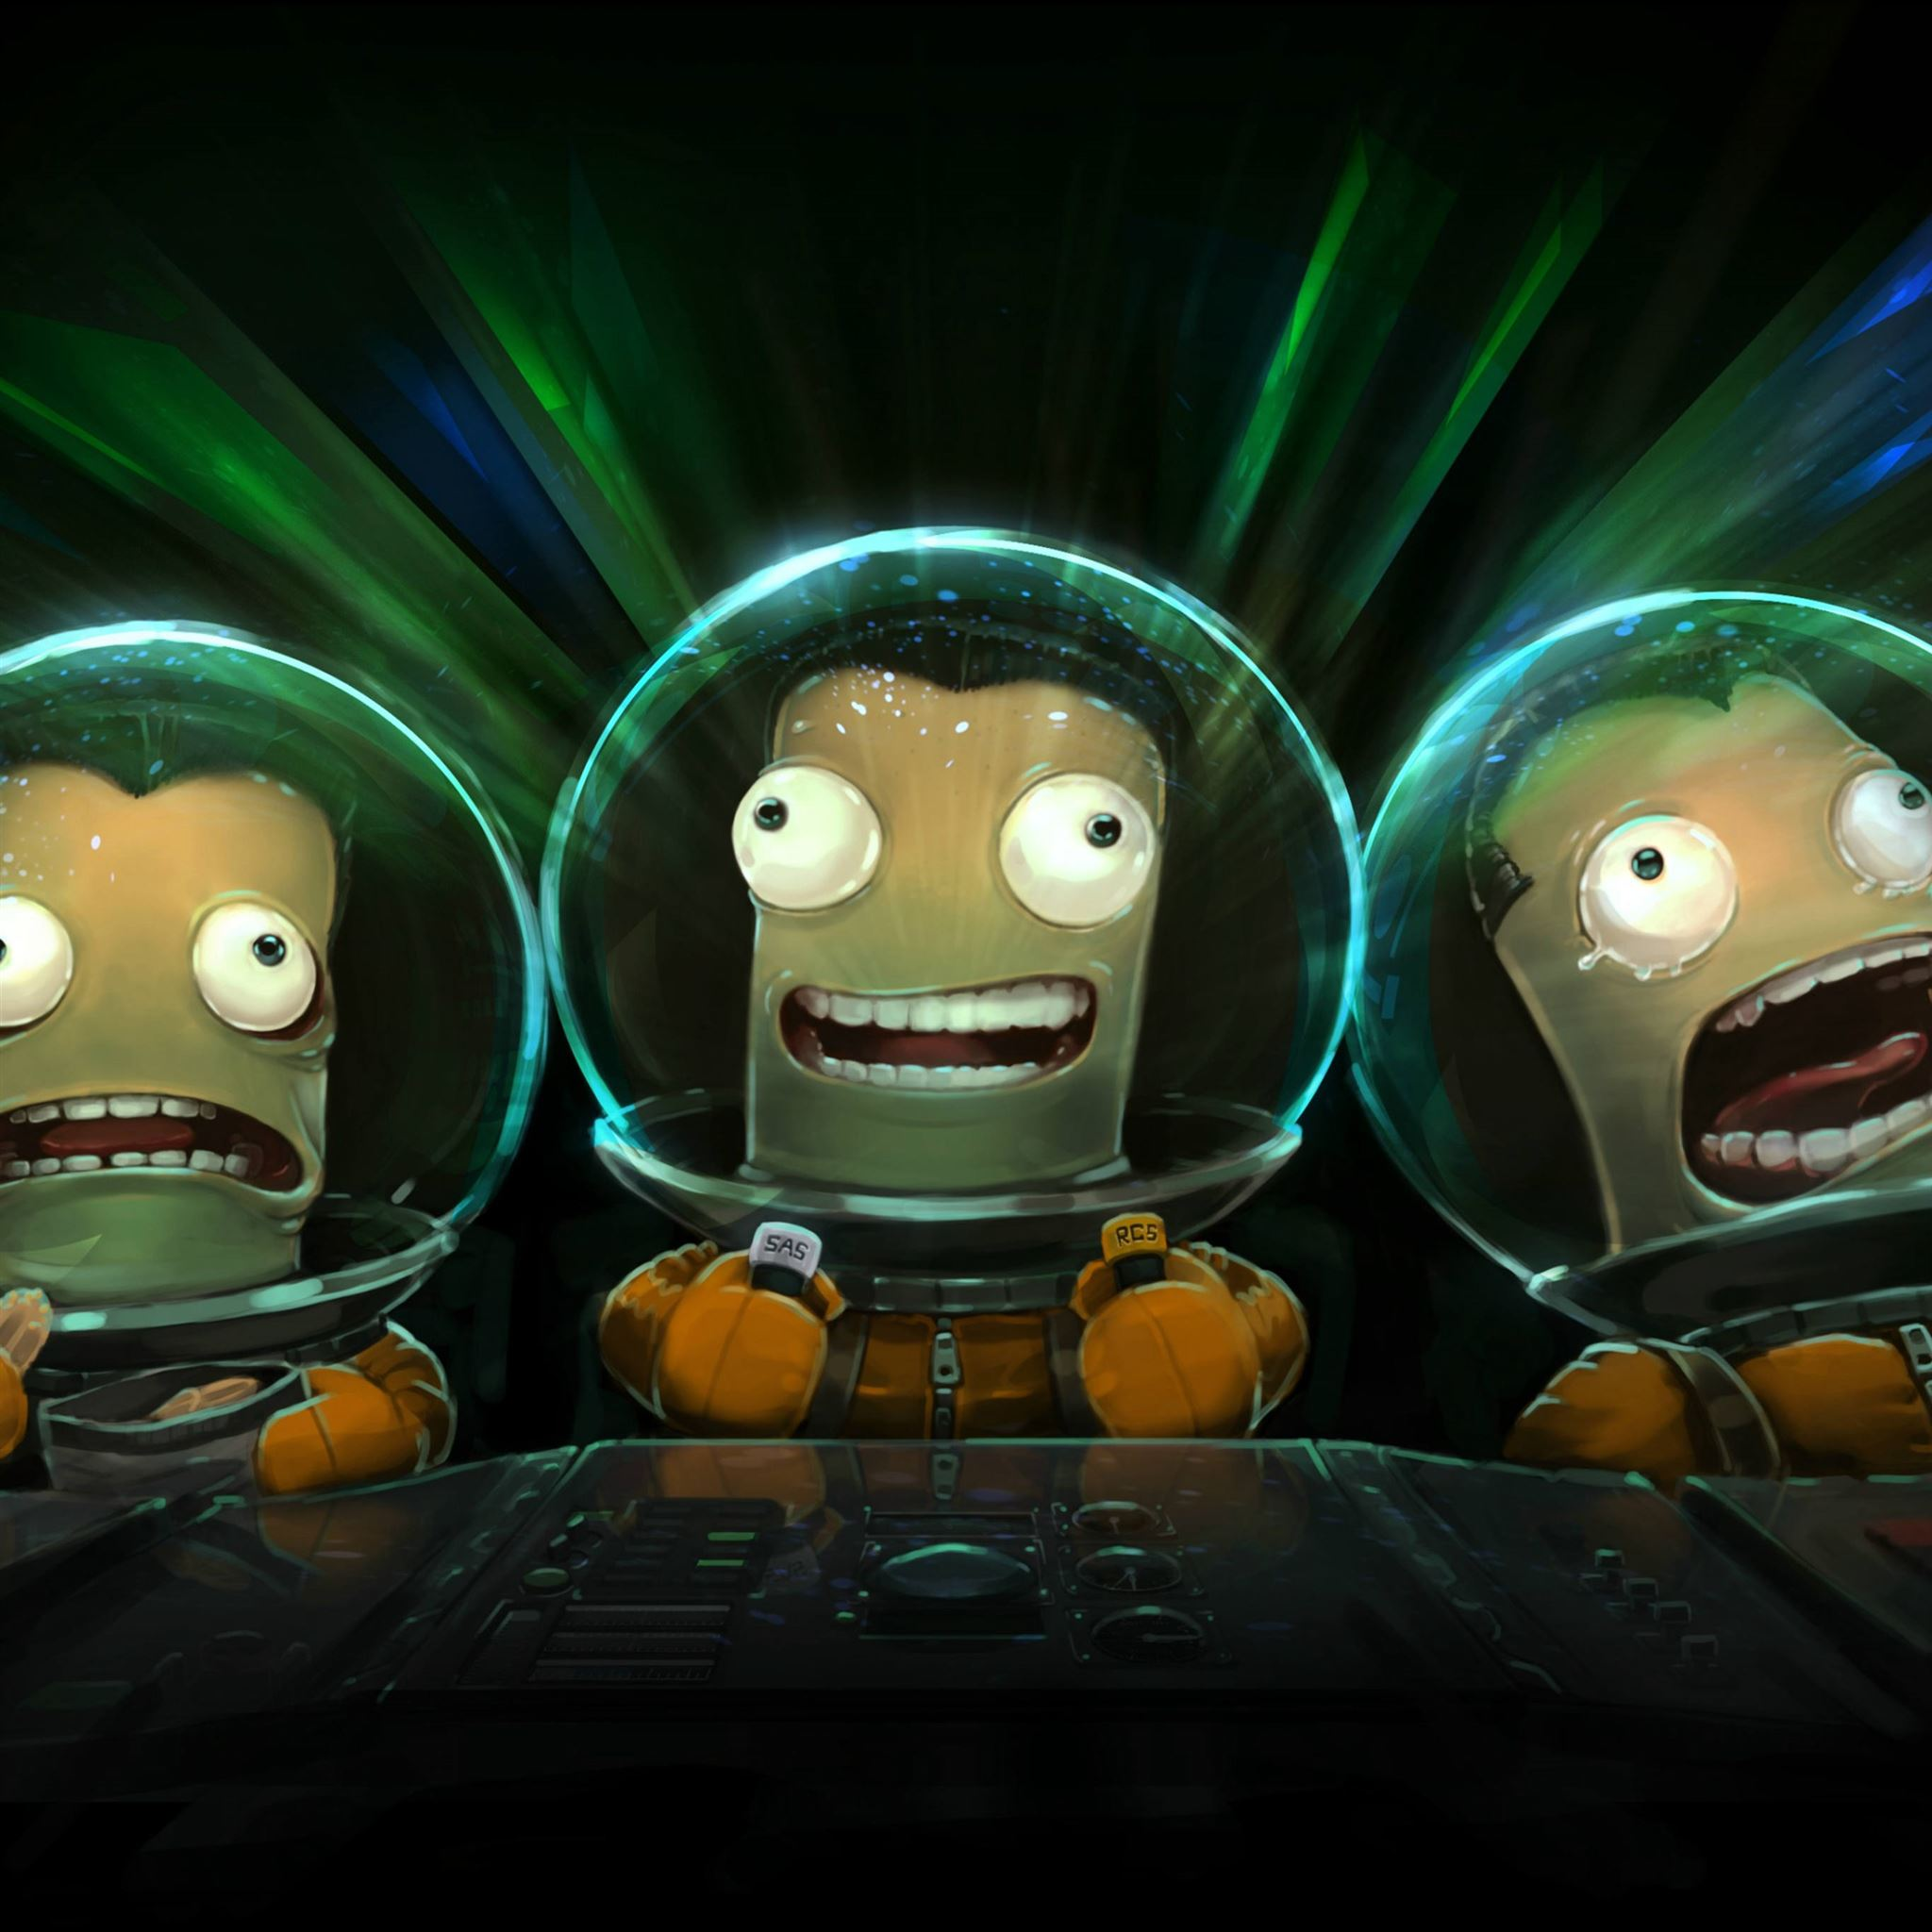 Kerbal Space Program Art Spacesuit Management iPad Pro wallpaper